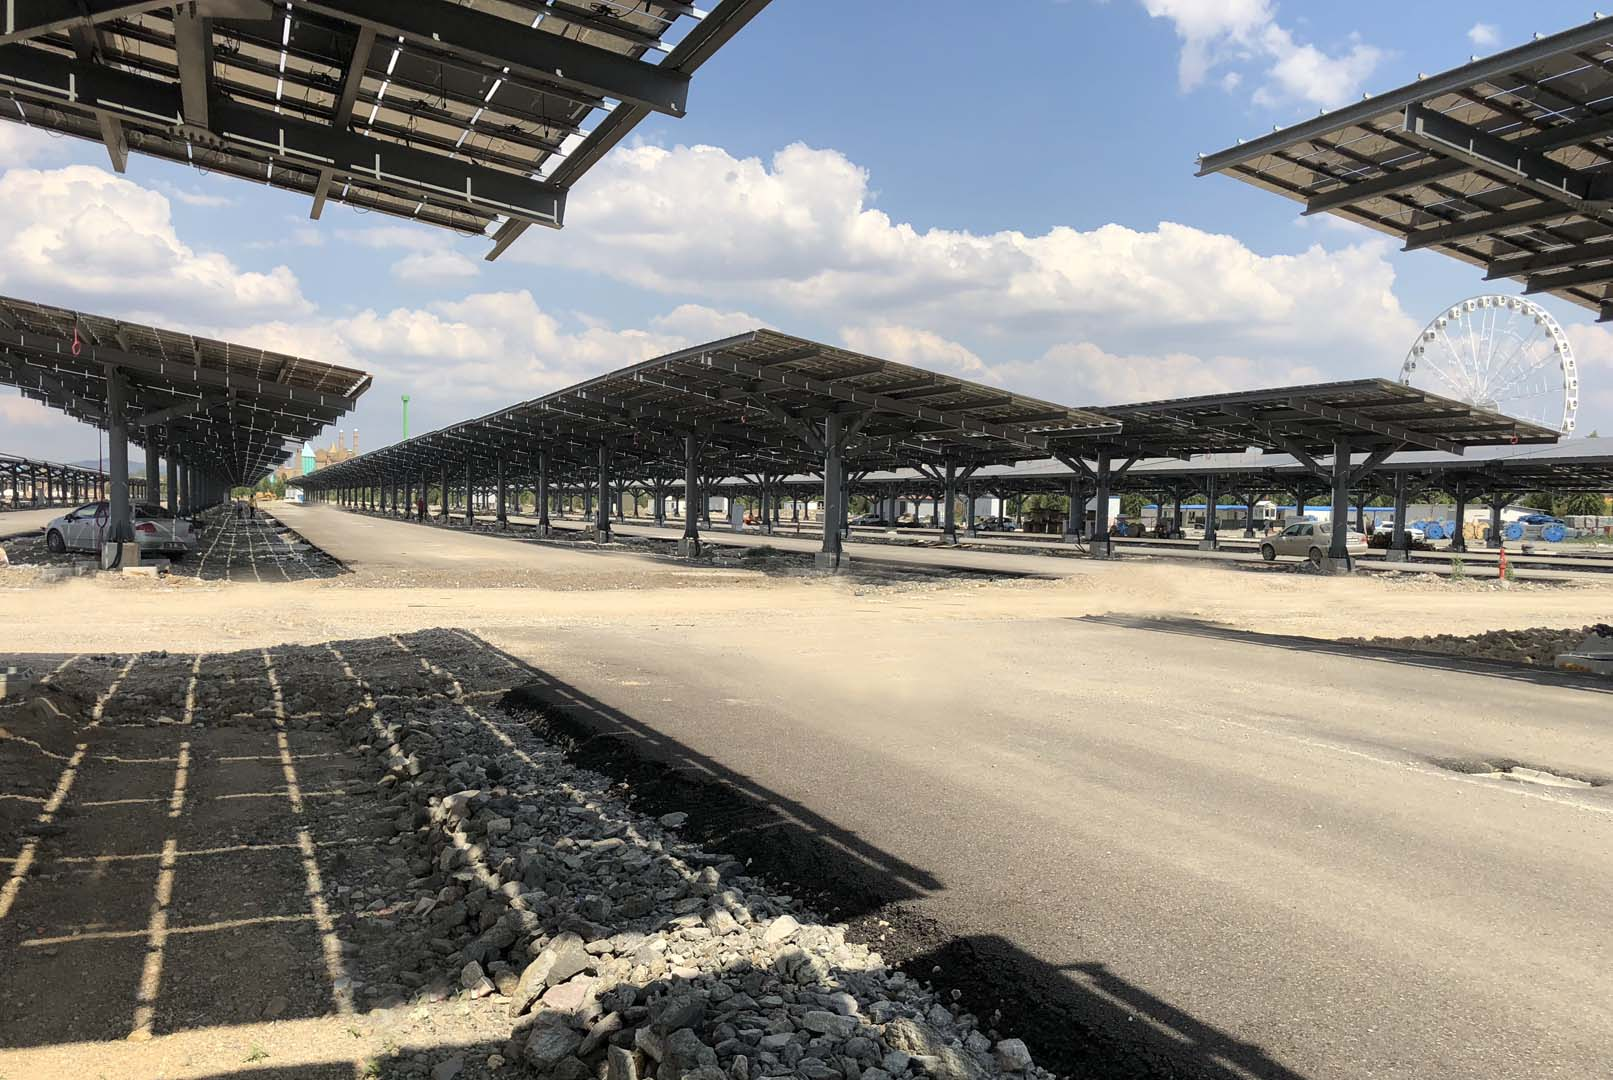 The solar carport will be used in the visitor car parking area and was constructed by Agon Enerji, which used 196 blueplanet 50.0 TL3 inverters and ten Powador 60.0 TL3 inverters from KACO and CdTe thin-film Series 4 modules (120Wp) from First Solar. Image: KACO